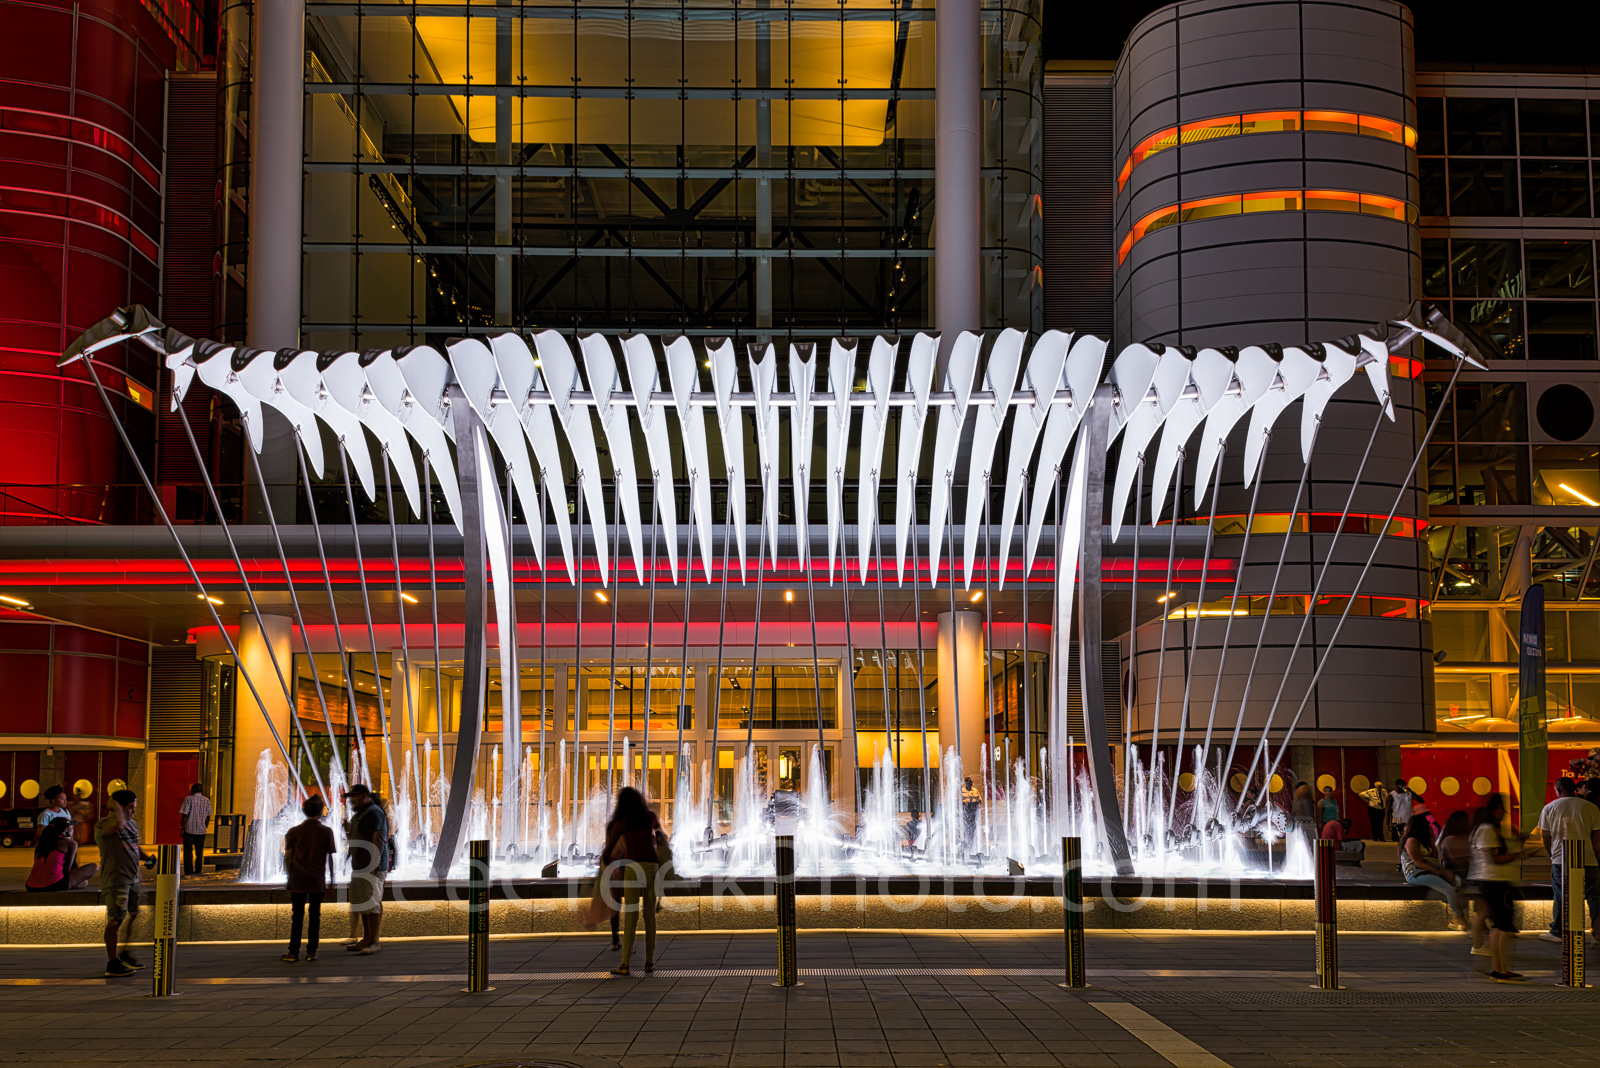 Houston, George Brown convention center, Wings Over Water, sculpture, downtown, street scene, lifestyles, city life, urban, art, water feature, horizontal, people, night, photo